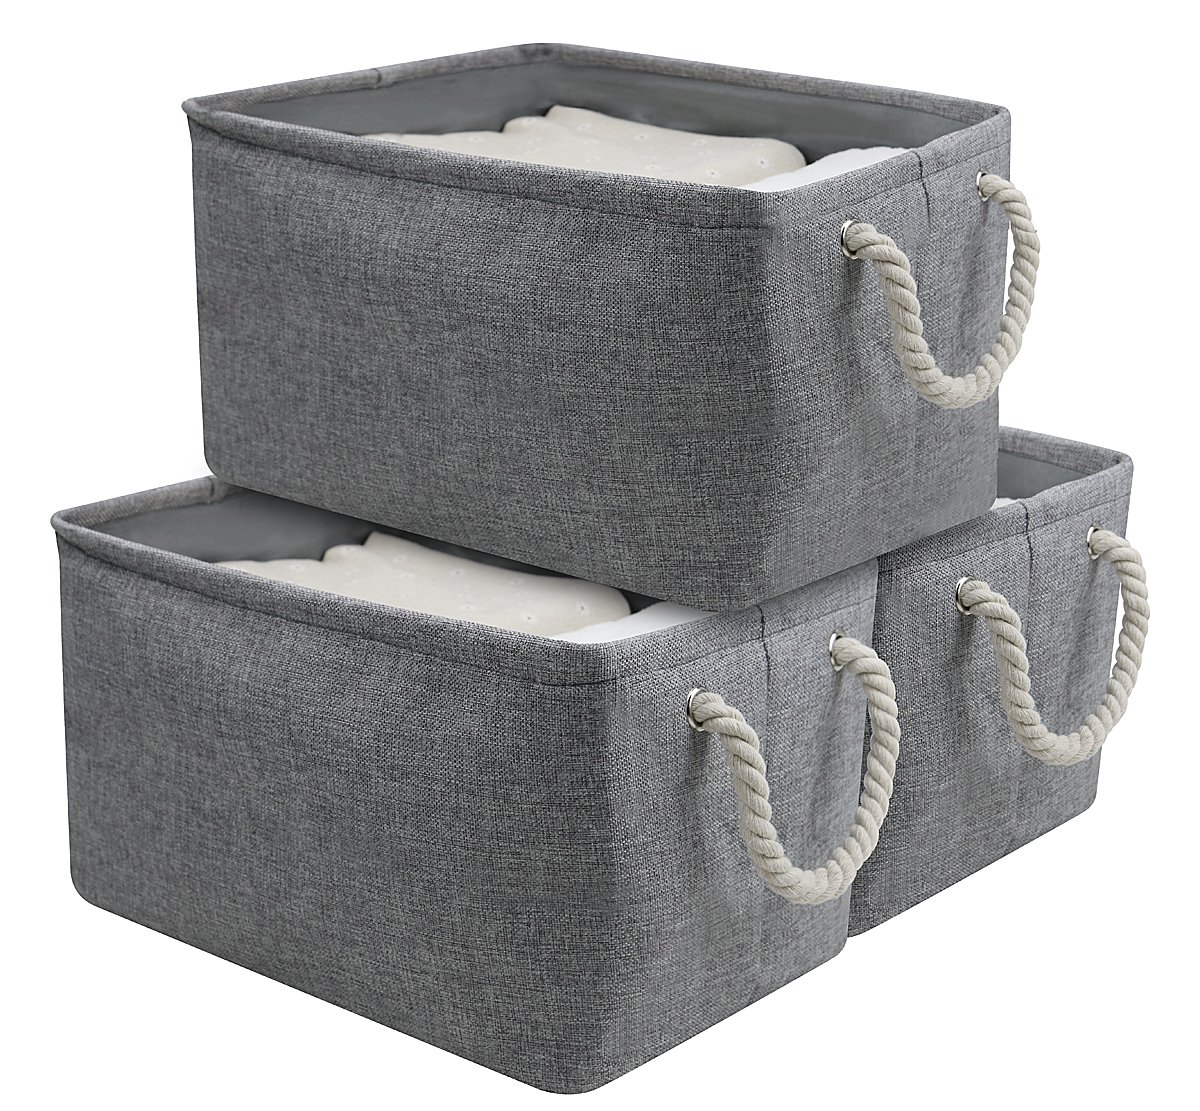 "AMJ Cotton Storage Basket Container with Strong Cotton Rope Handle, Foldable Cabinet Cube Organizer Bin, Gray, Polyester Lining, 3-Pack, Gray - Dimension: 16""(L)x11""(W)x9""(H),41x28x23cm,Suit for most storage shelf,cabinet,closet or table.Pack of 3 together for make your room more neat. Materials: this baskets made of eco-friendly materials, 100% natural Jute fabric outside, cotton Handles, Polyester Lining, it is very durable and pretty. Attractive Design: the collapsible basket won't waste your space if you needn't use it. and the strong cotton handles are very easily to slide in and pull out of shelves or cabinet. - living-room-decor, living-room, baskets-storage - 81JnINnxWQL -"